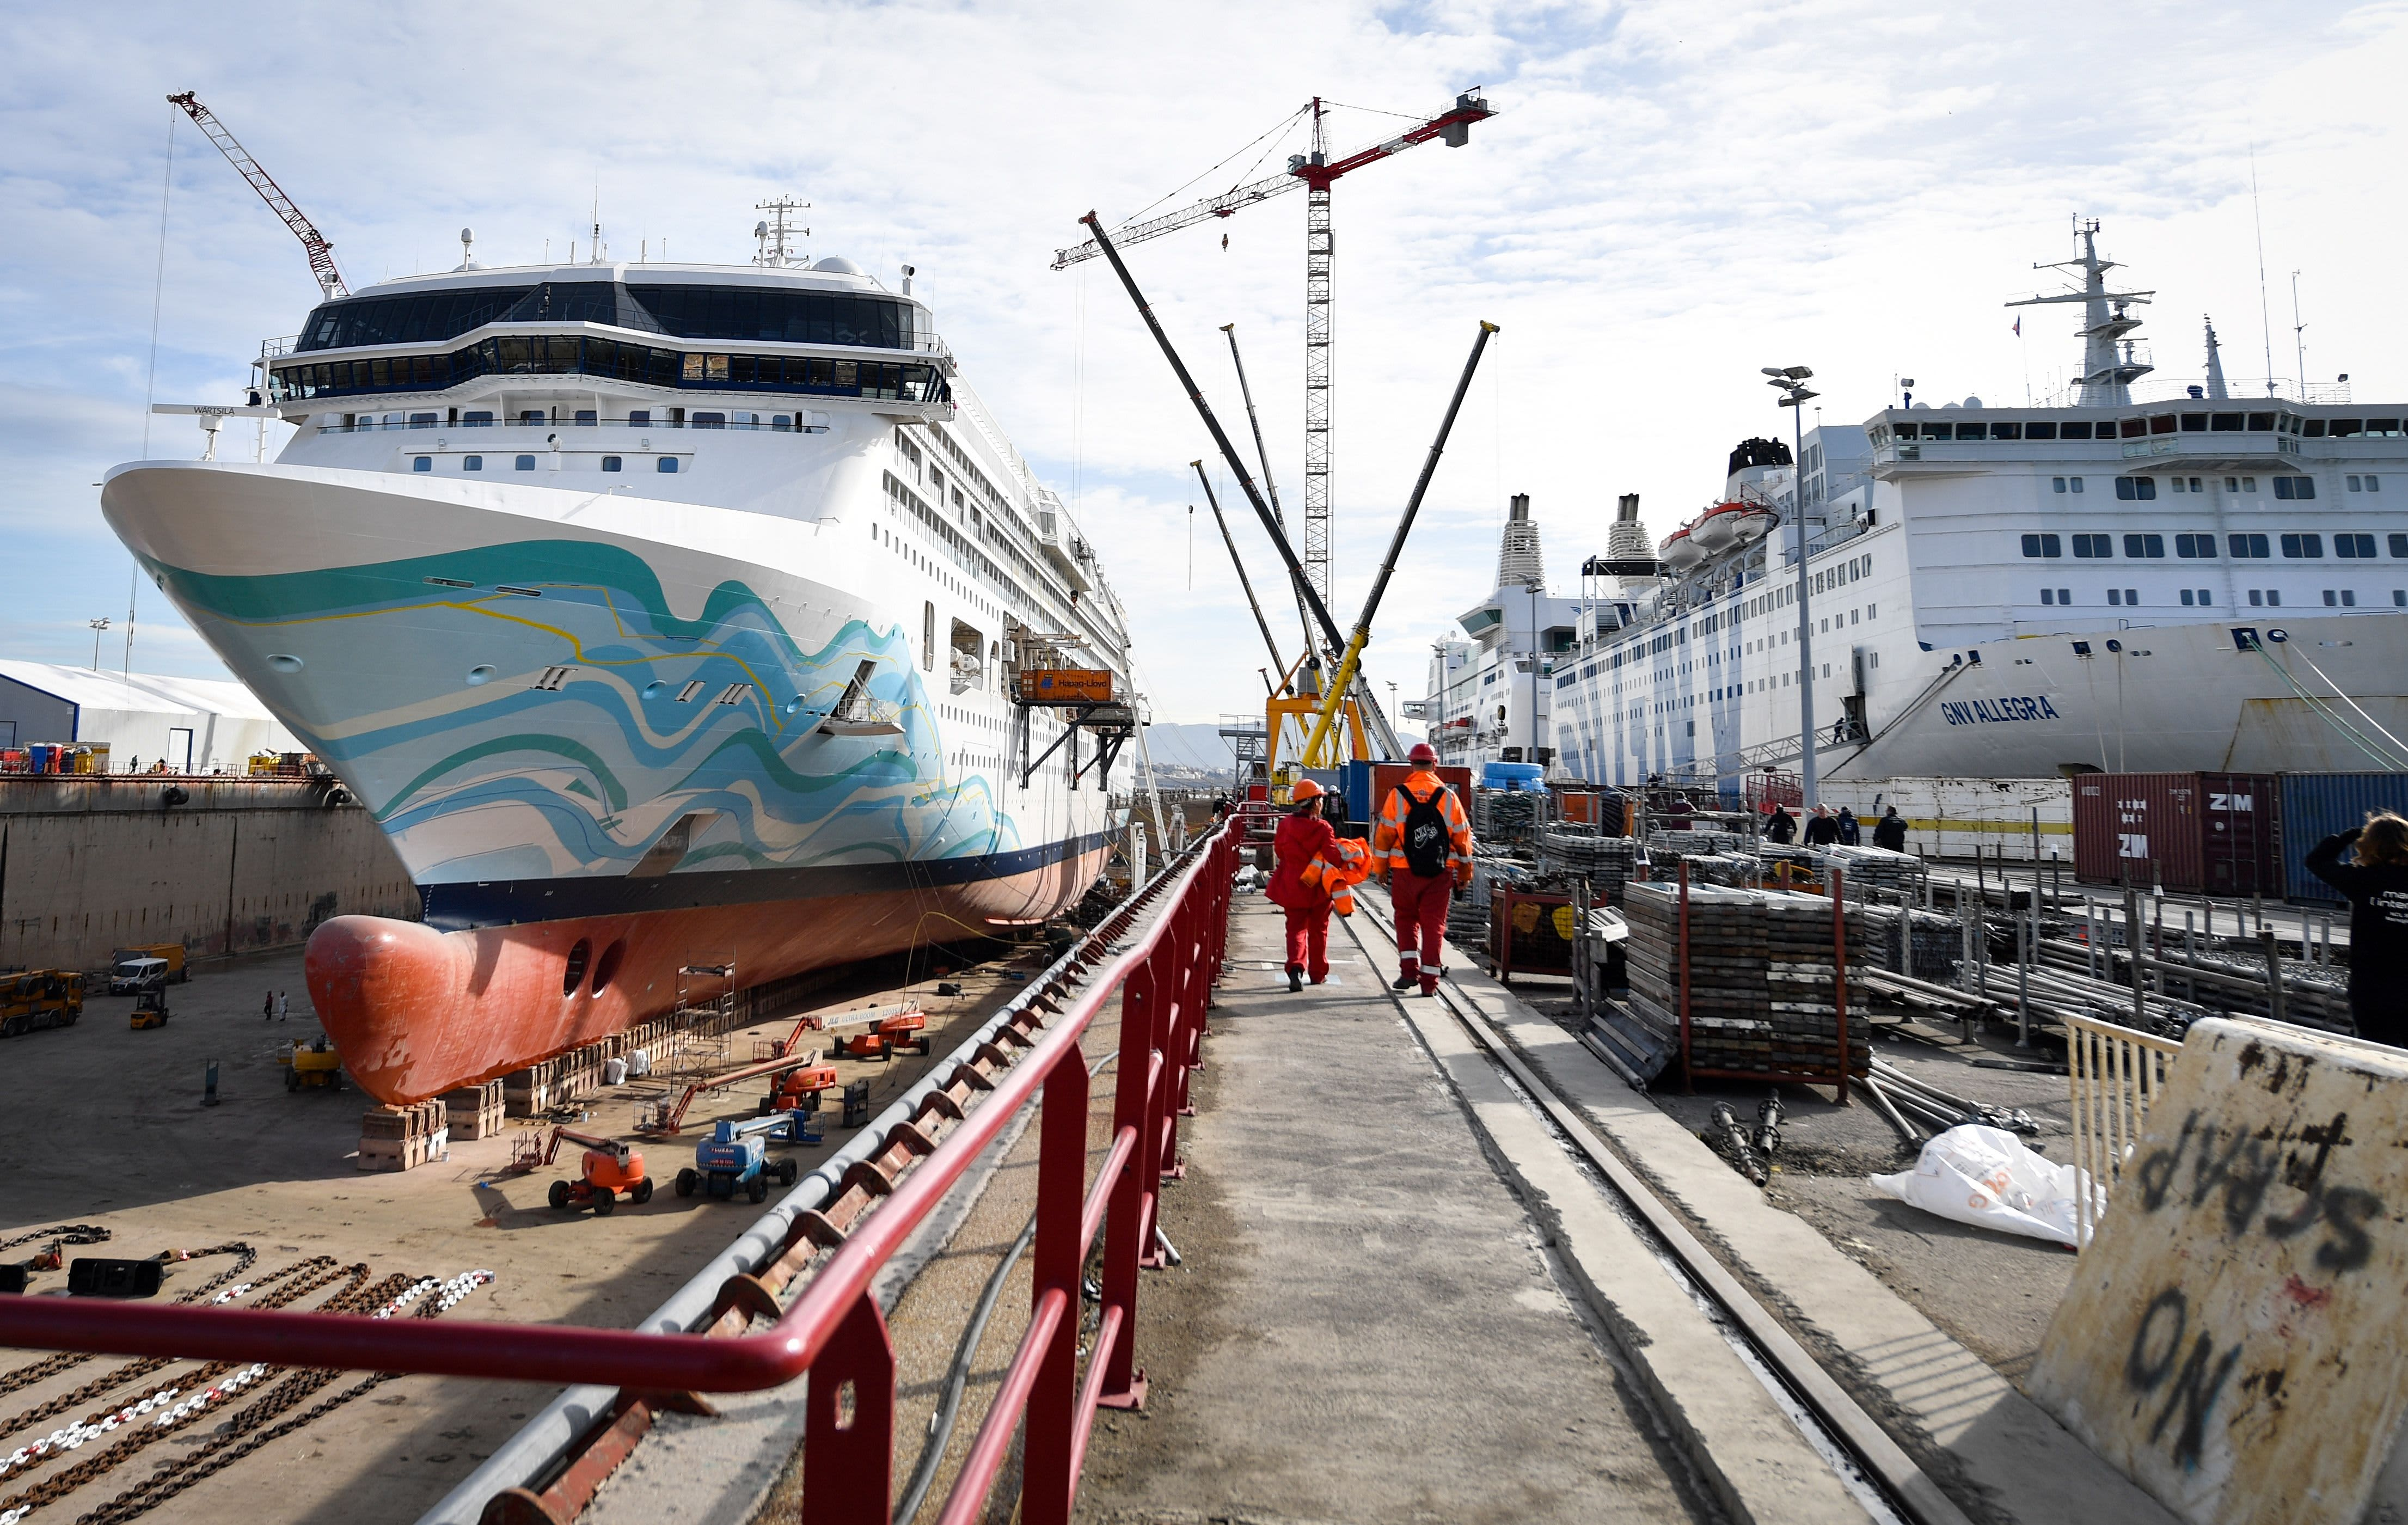 Norwegian Cruise Line says there's 'substantial doubt' about its ability to continue as a 'going concern'